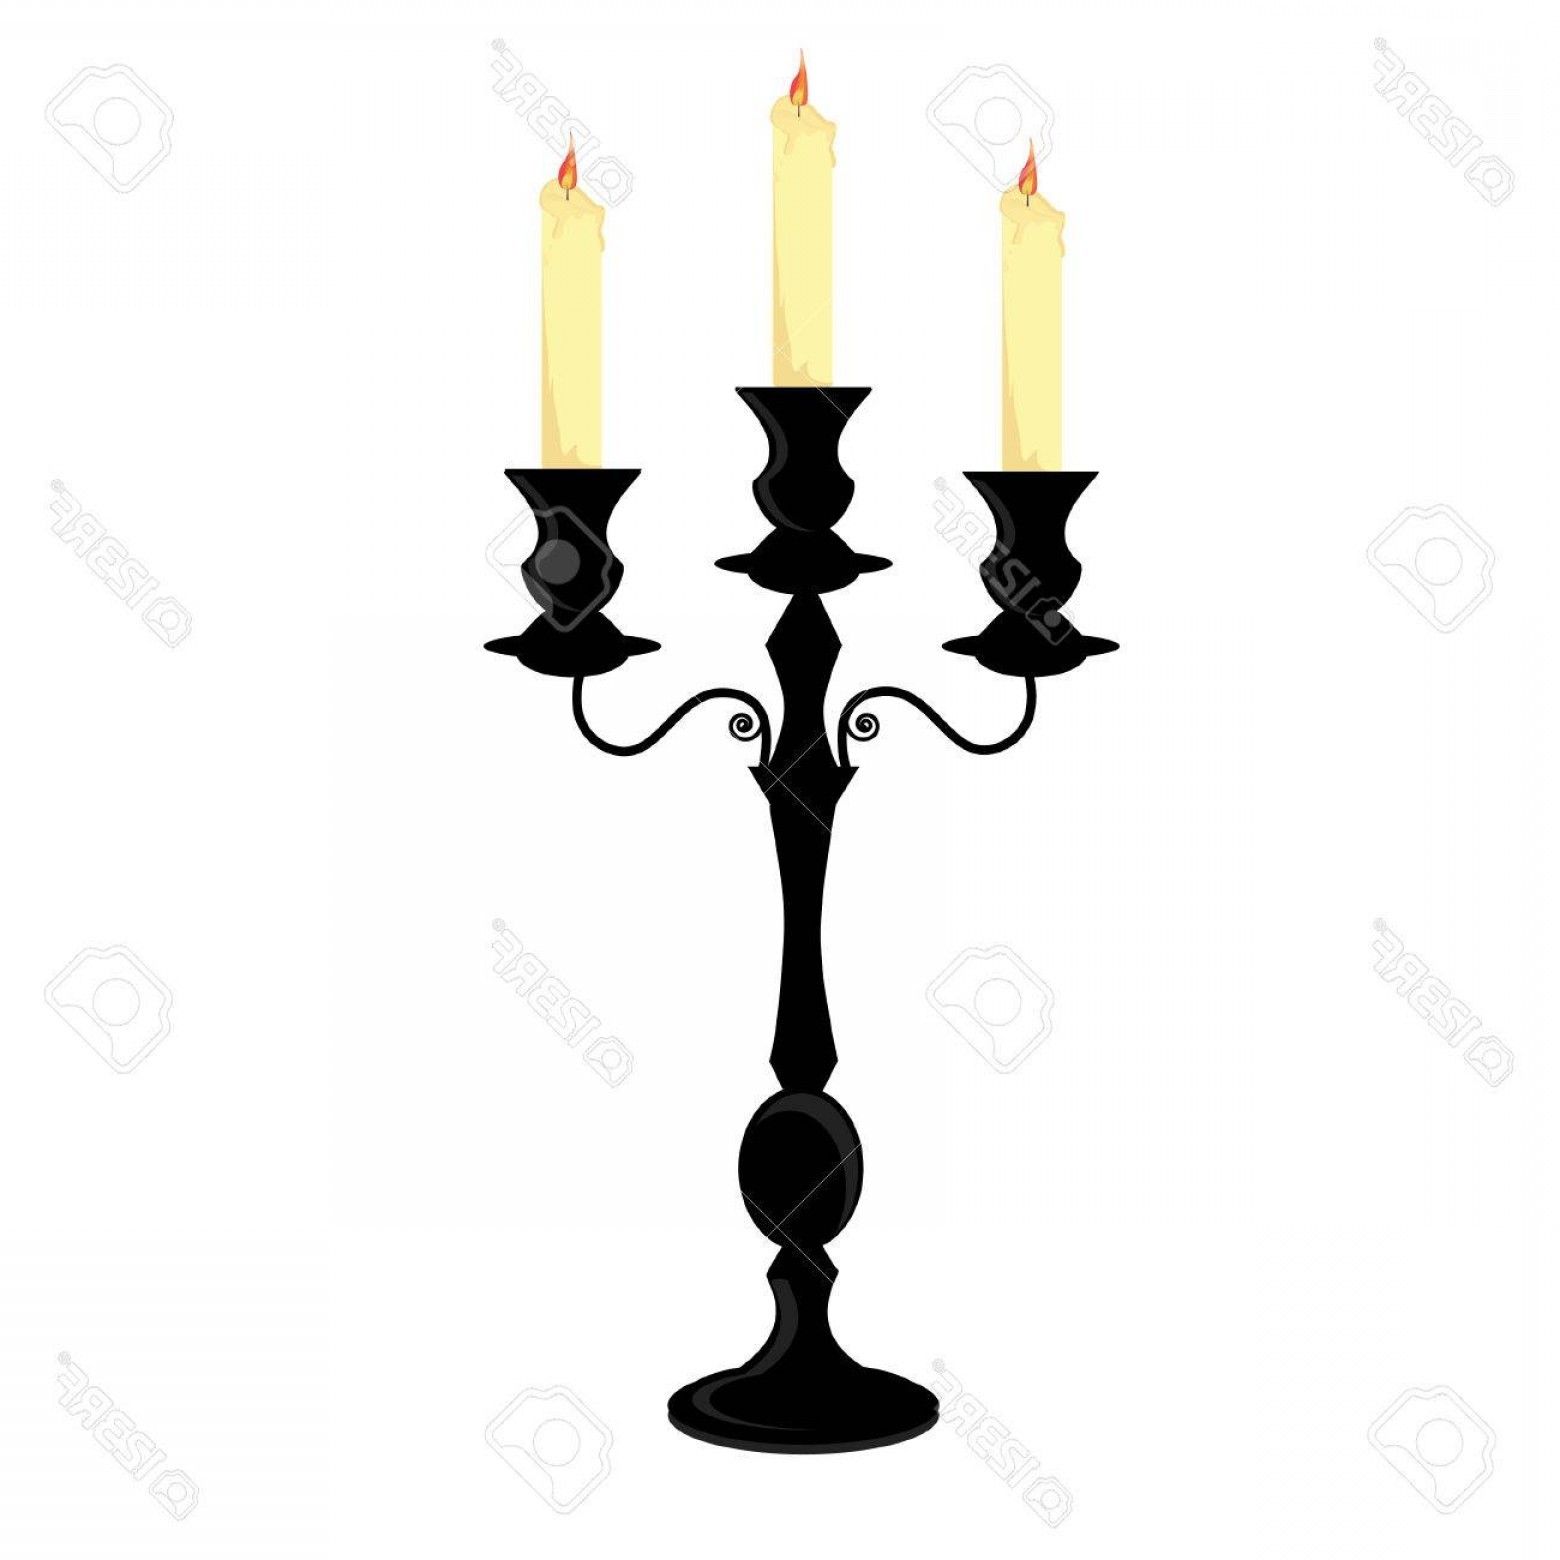 Candle Vector Black: Photostock Vector Candle Holder Black Candlestick With Three Burning Candles Vector